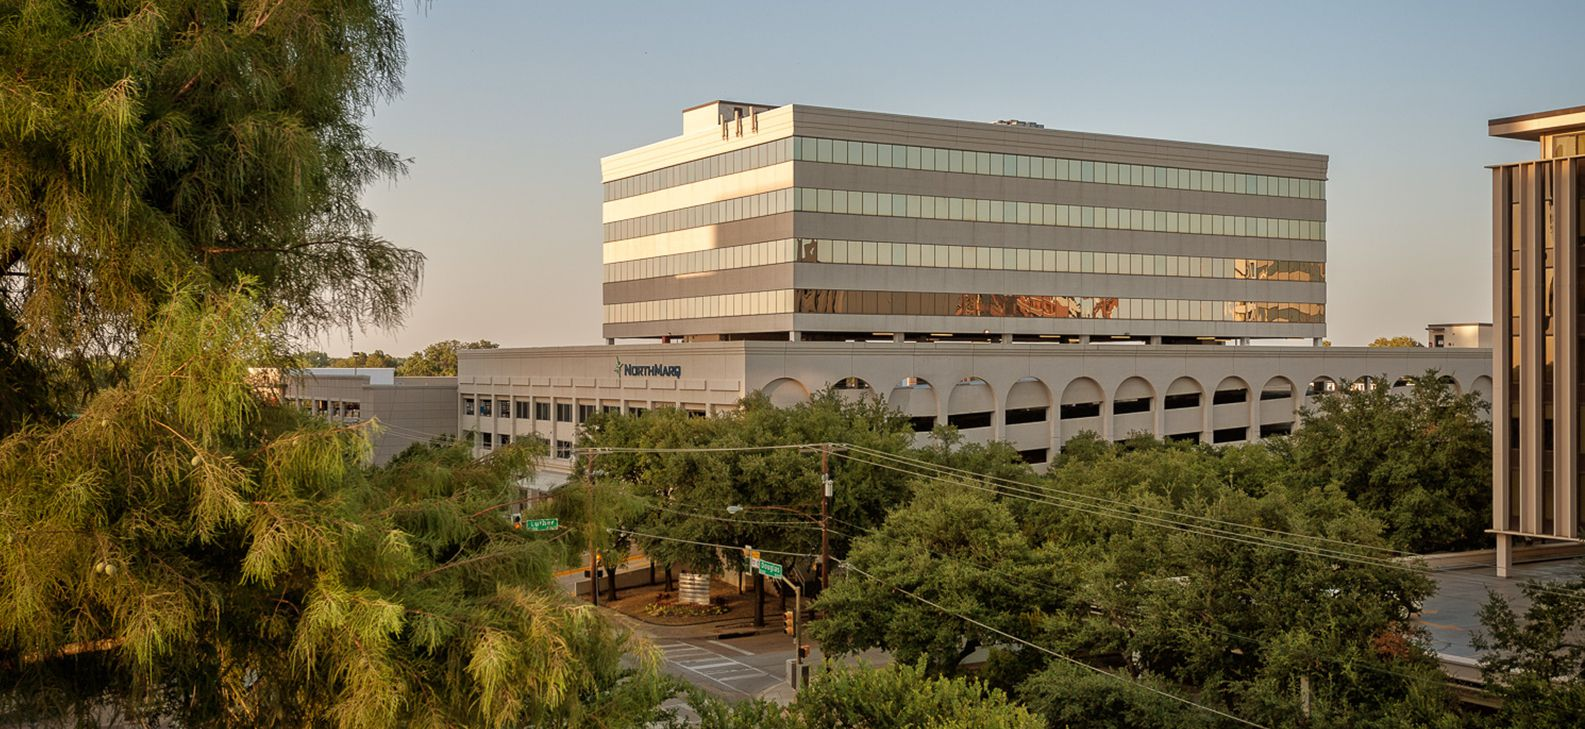 Bank of the Ozarks has leased 33,099 square feet of office space on two floors at 8300 Douglas.